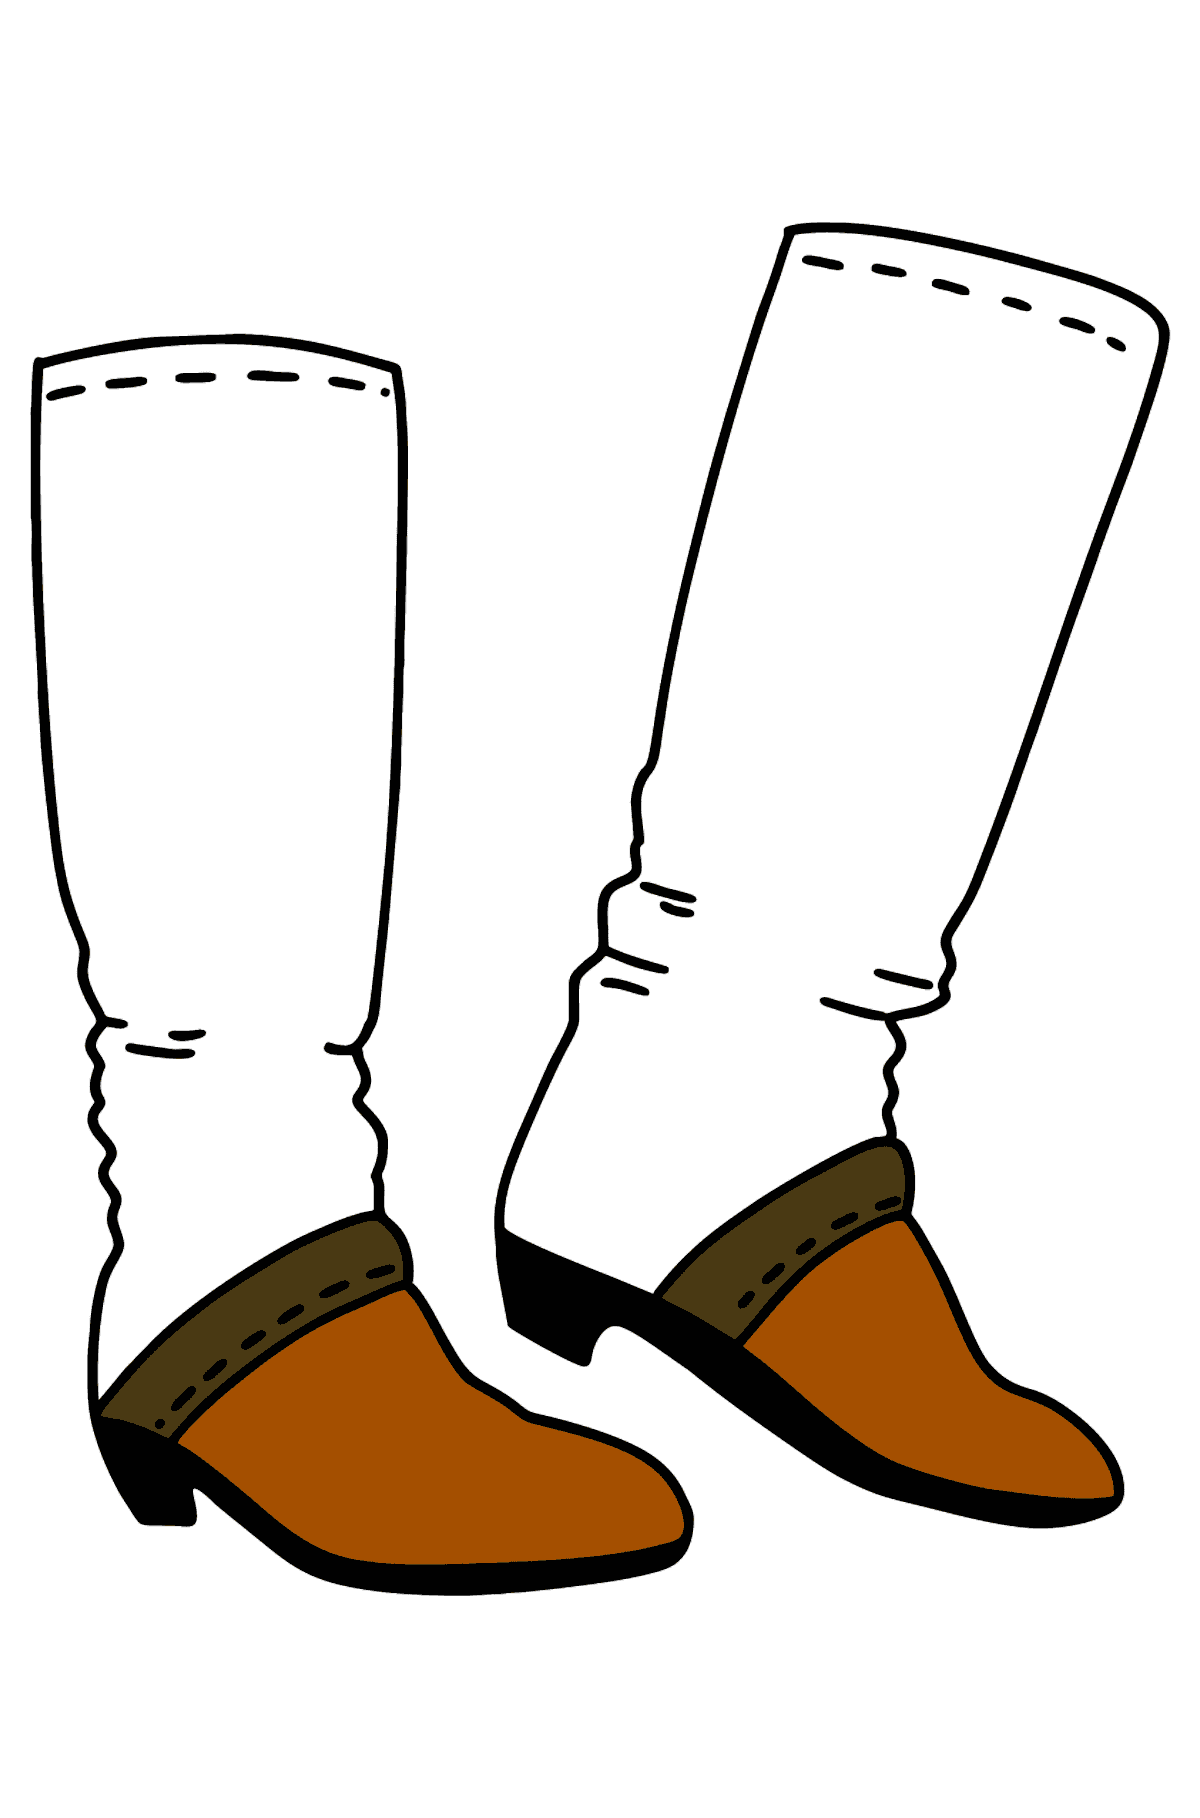 Boots coloring page - Coloring Pages for Kids